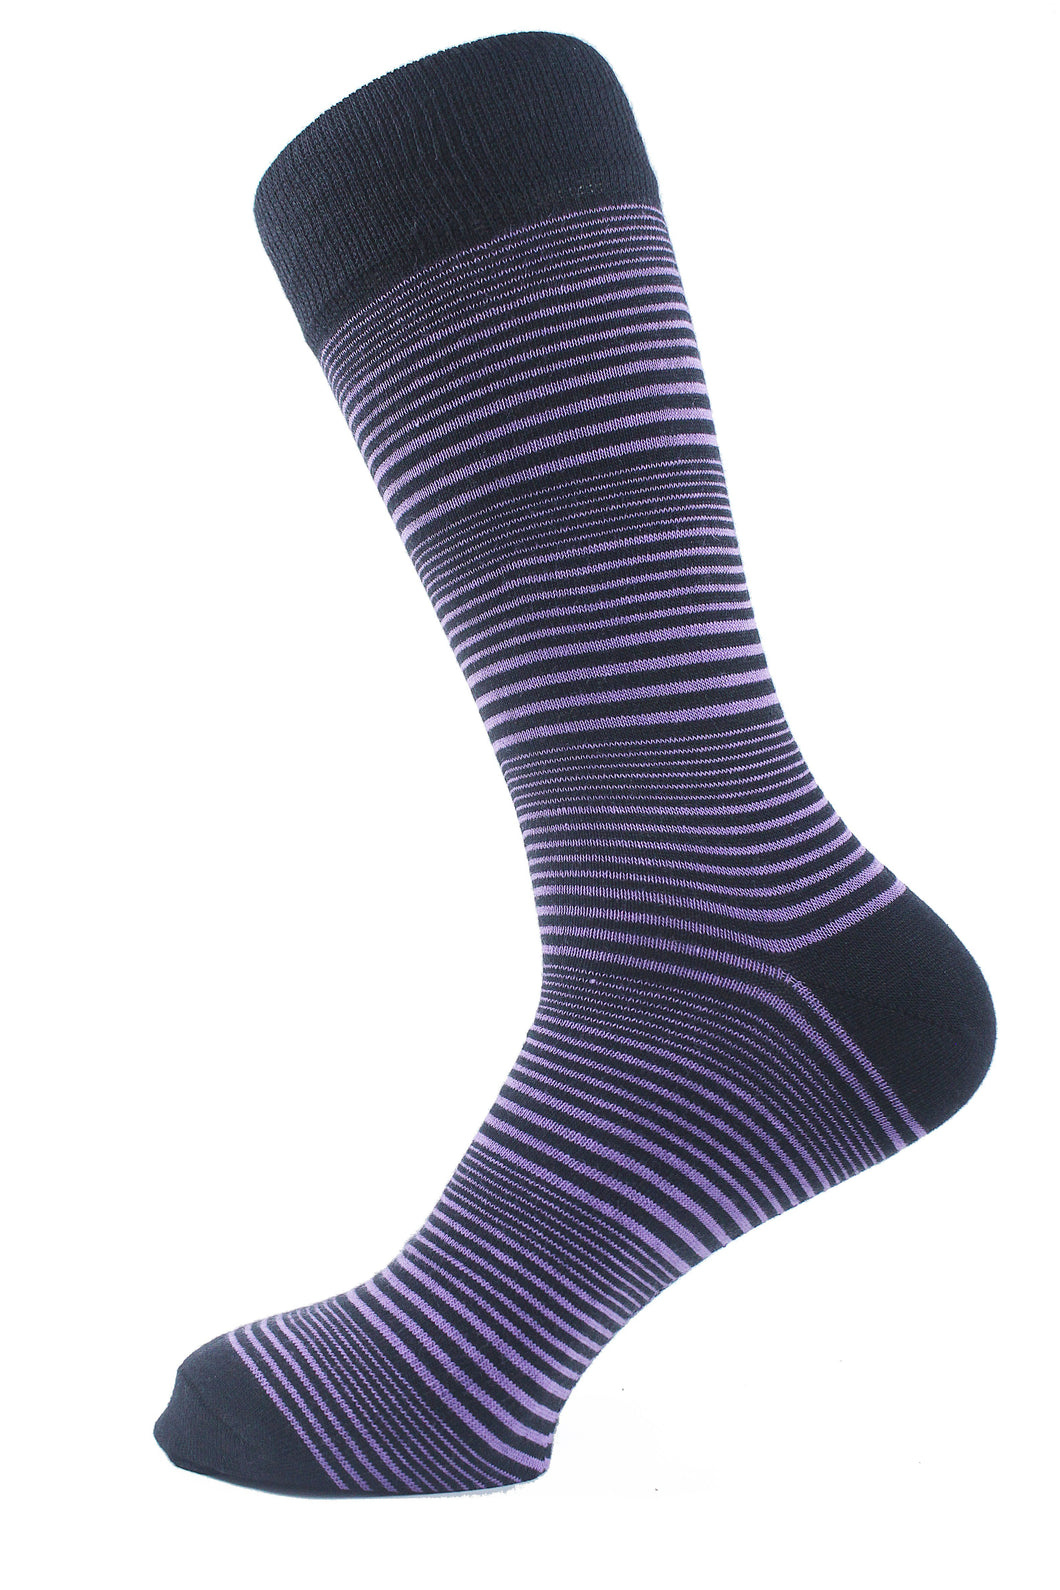 Striped Men Socks Purple - samnoveltysocks.com